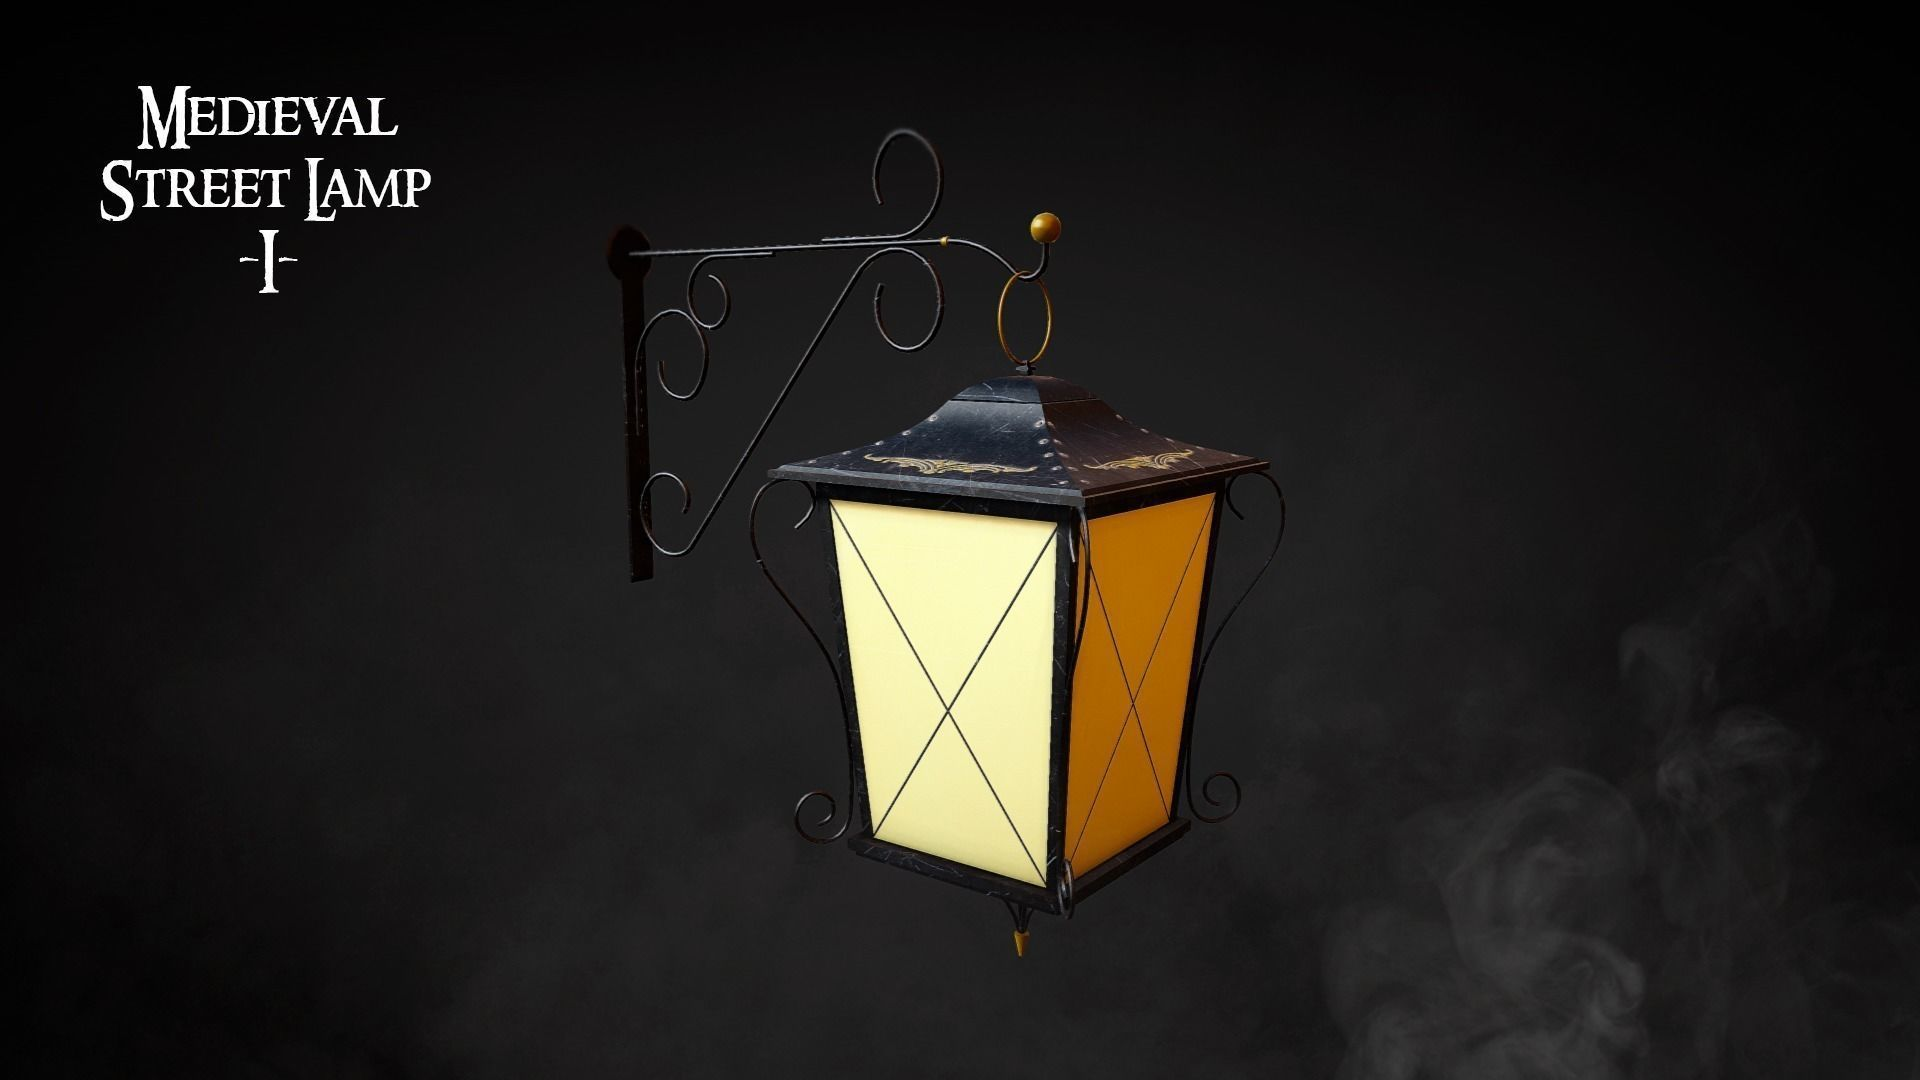 Medieval Street Lamp 01 3d Model Street Lamp Architectural Decoration Lamp